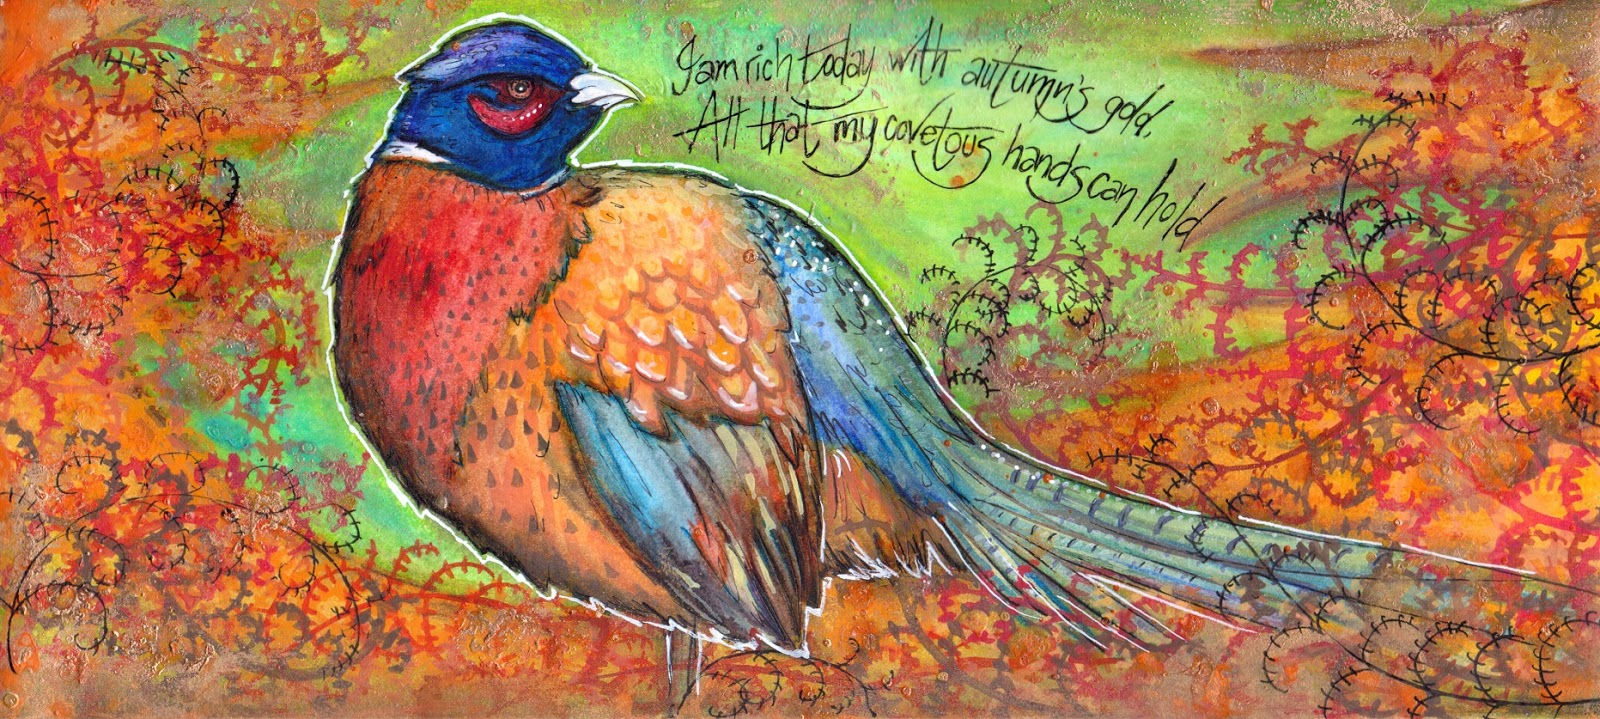 http://artyshroo.blogspot.co.uk/2013/11/a-pheasant-day-out-challenge-response.html